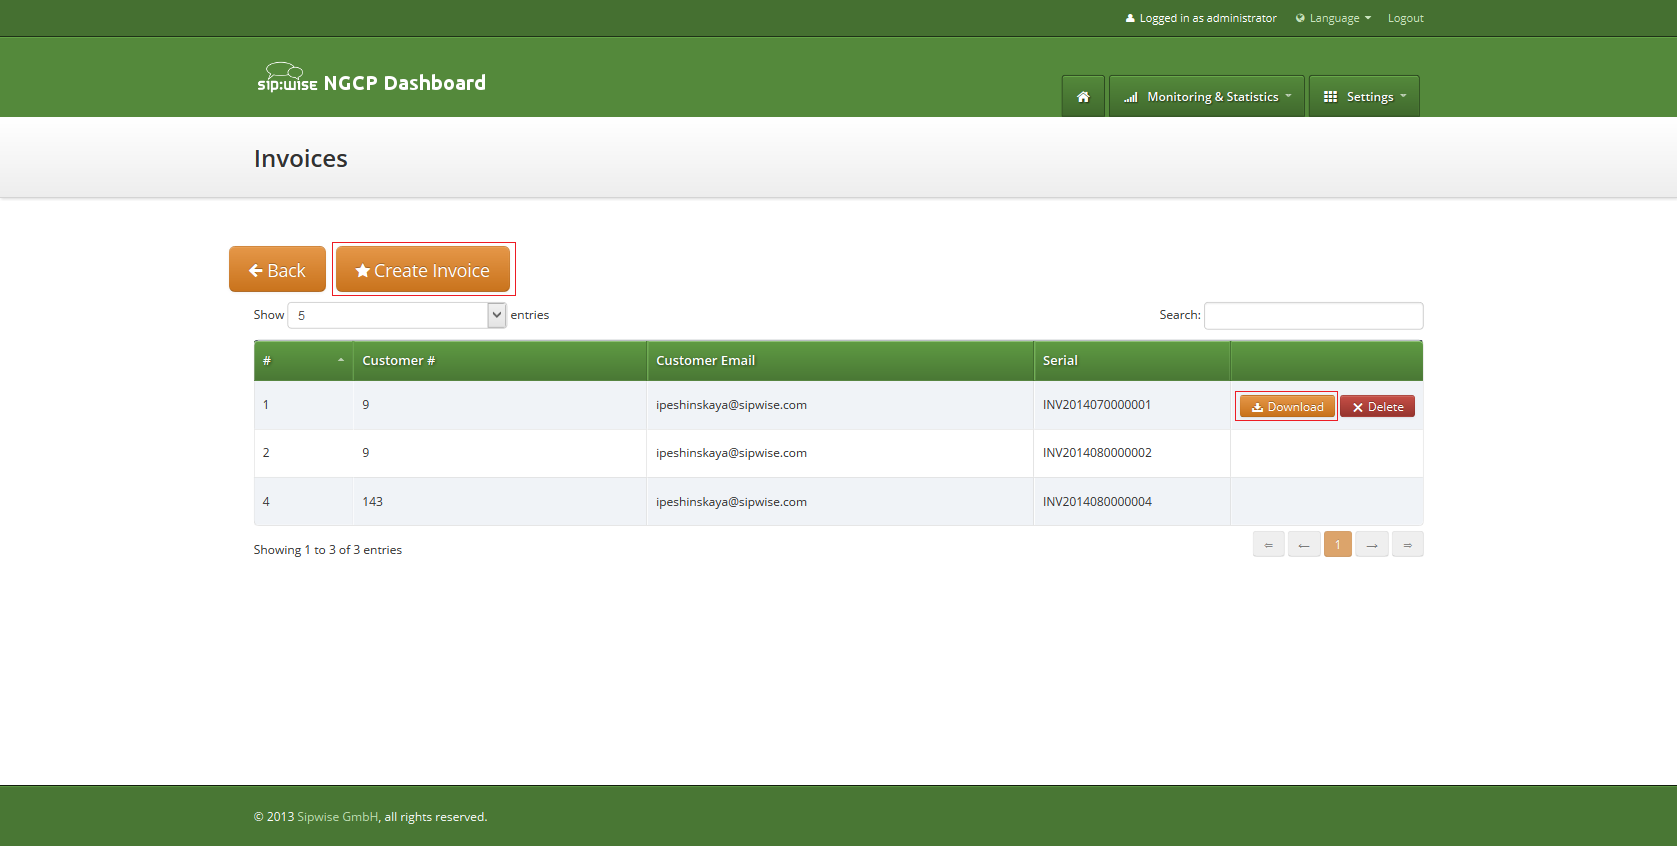 Invoices And Invoice Templates - Templates for invoices